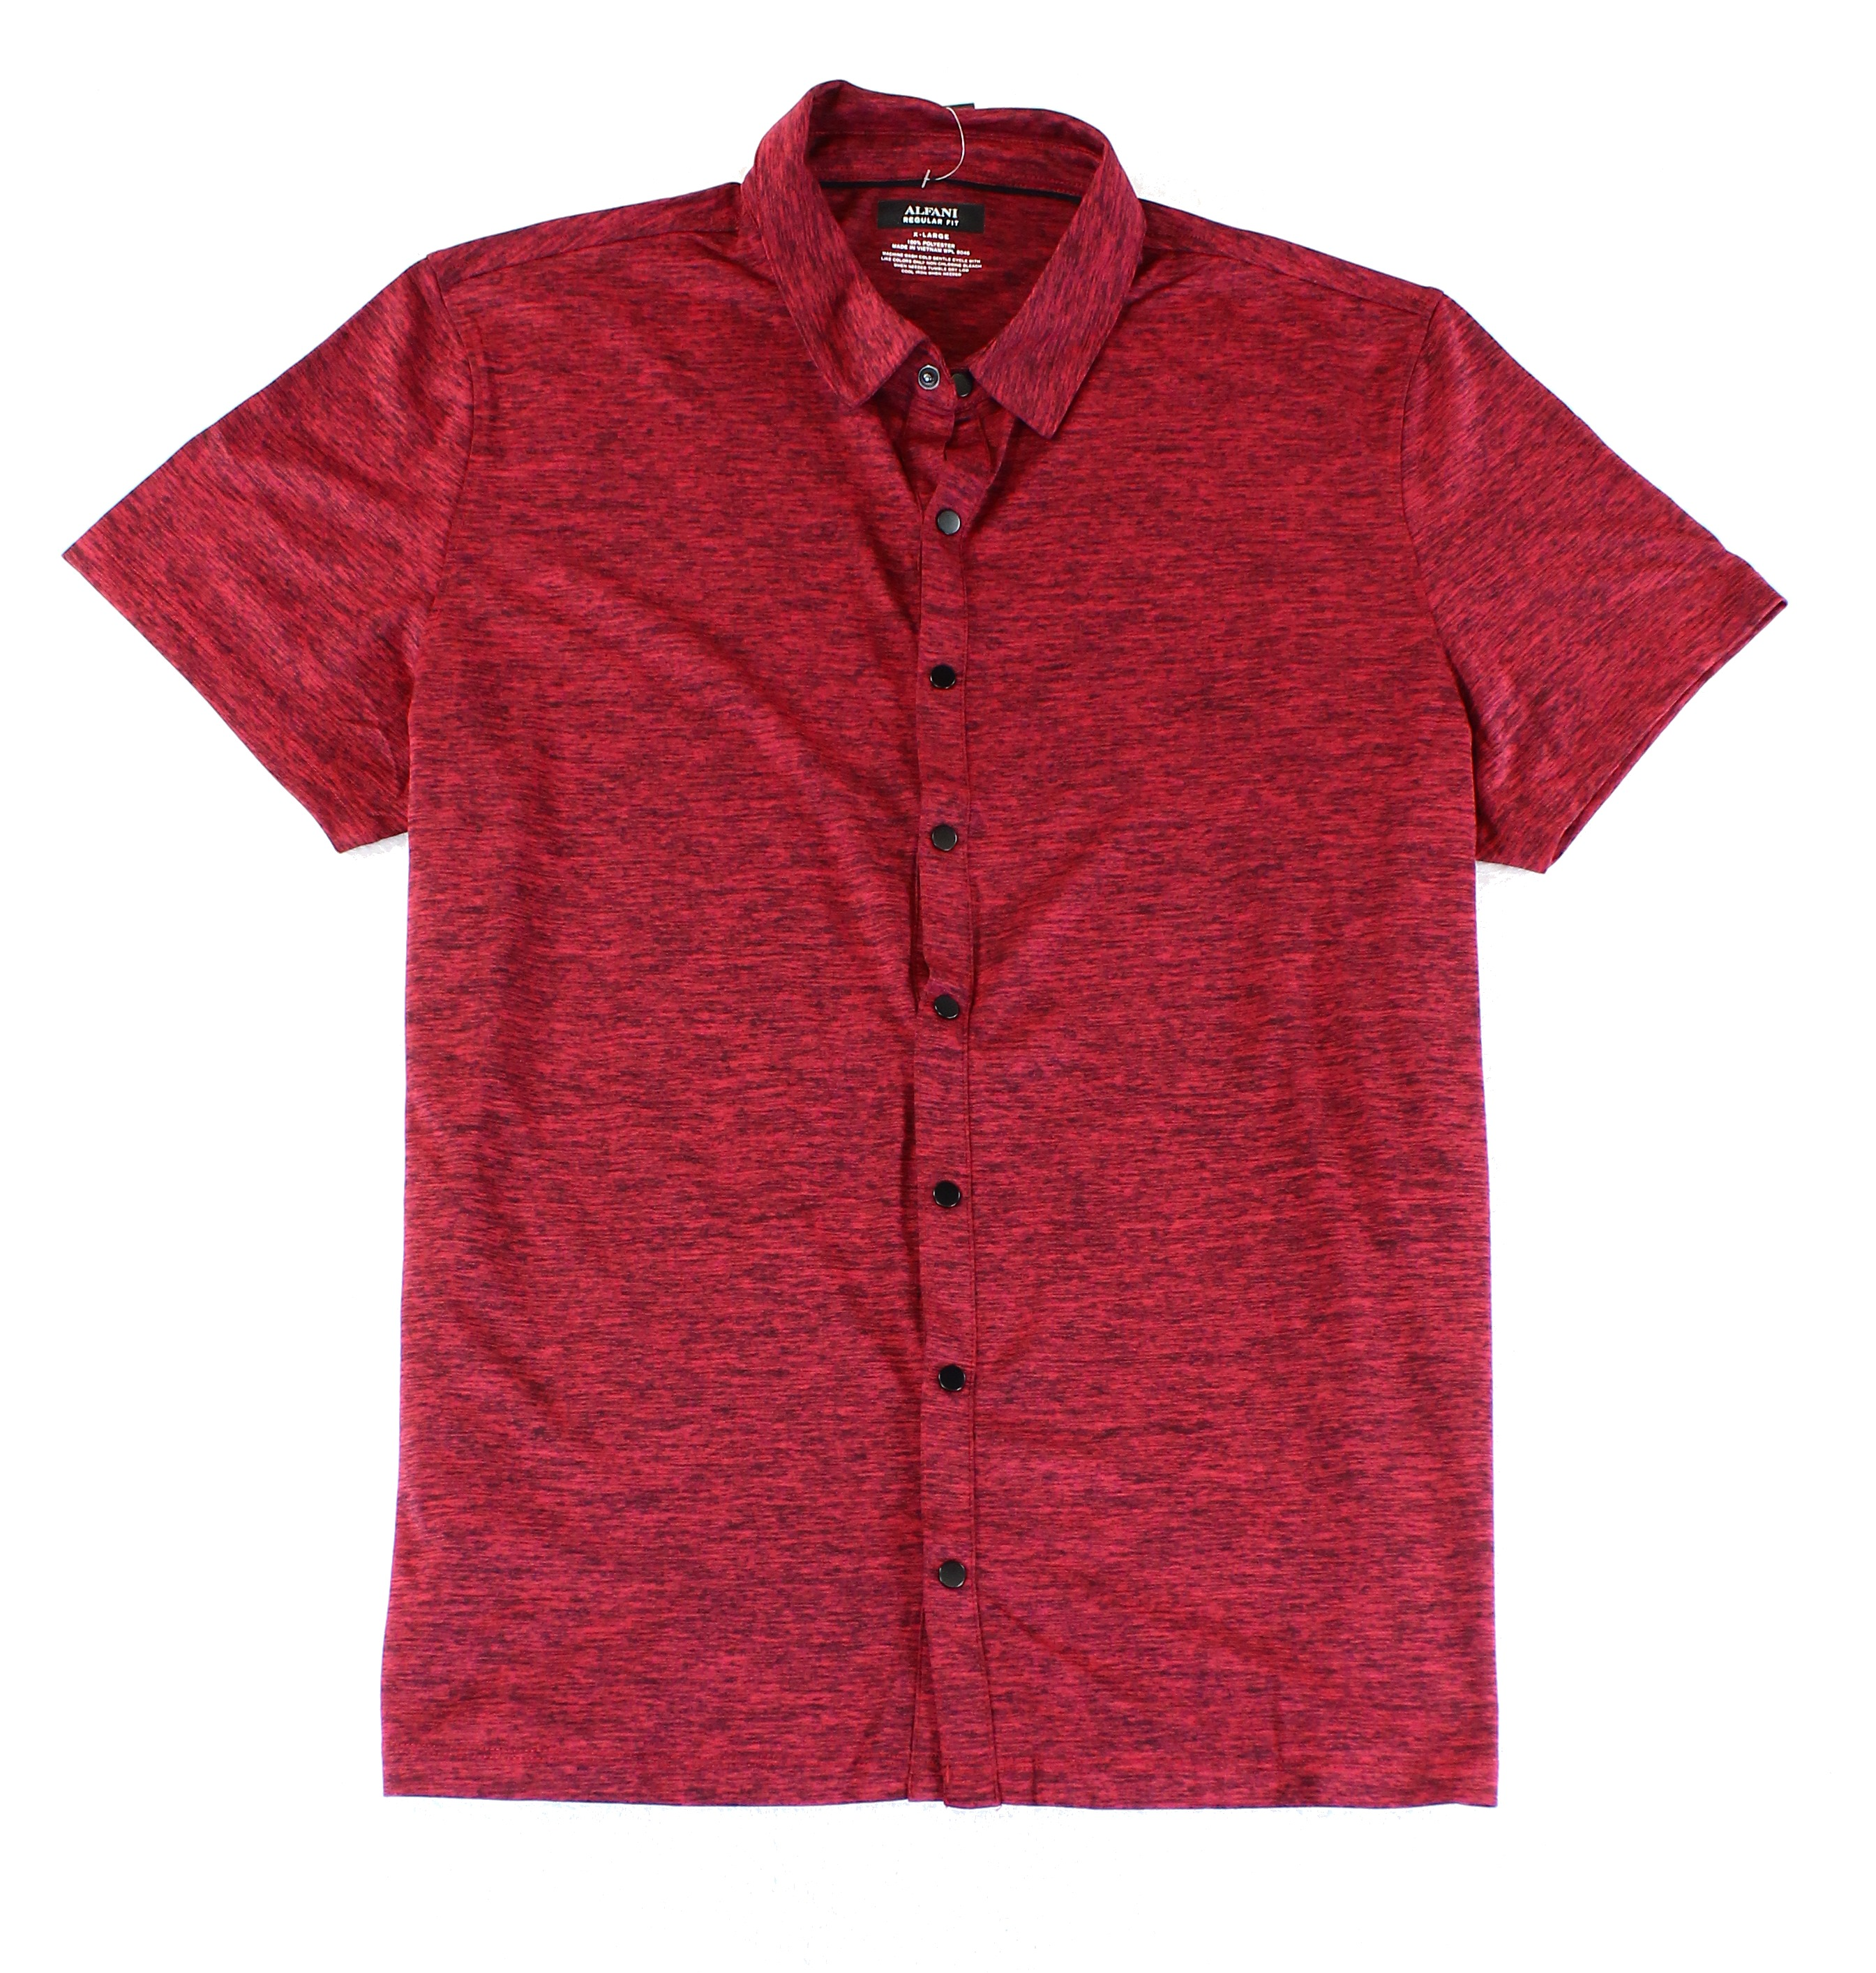 Alfani NEW Clay Red Heather Mens Size XL Regular Fit Button Down Shirt